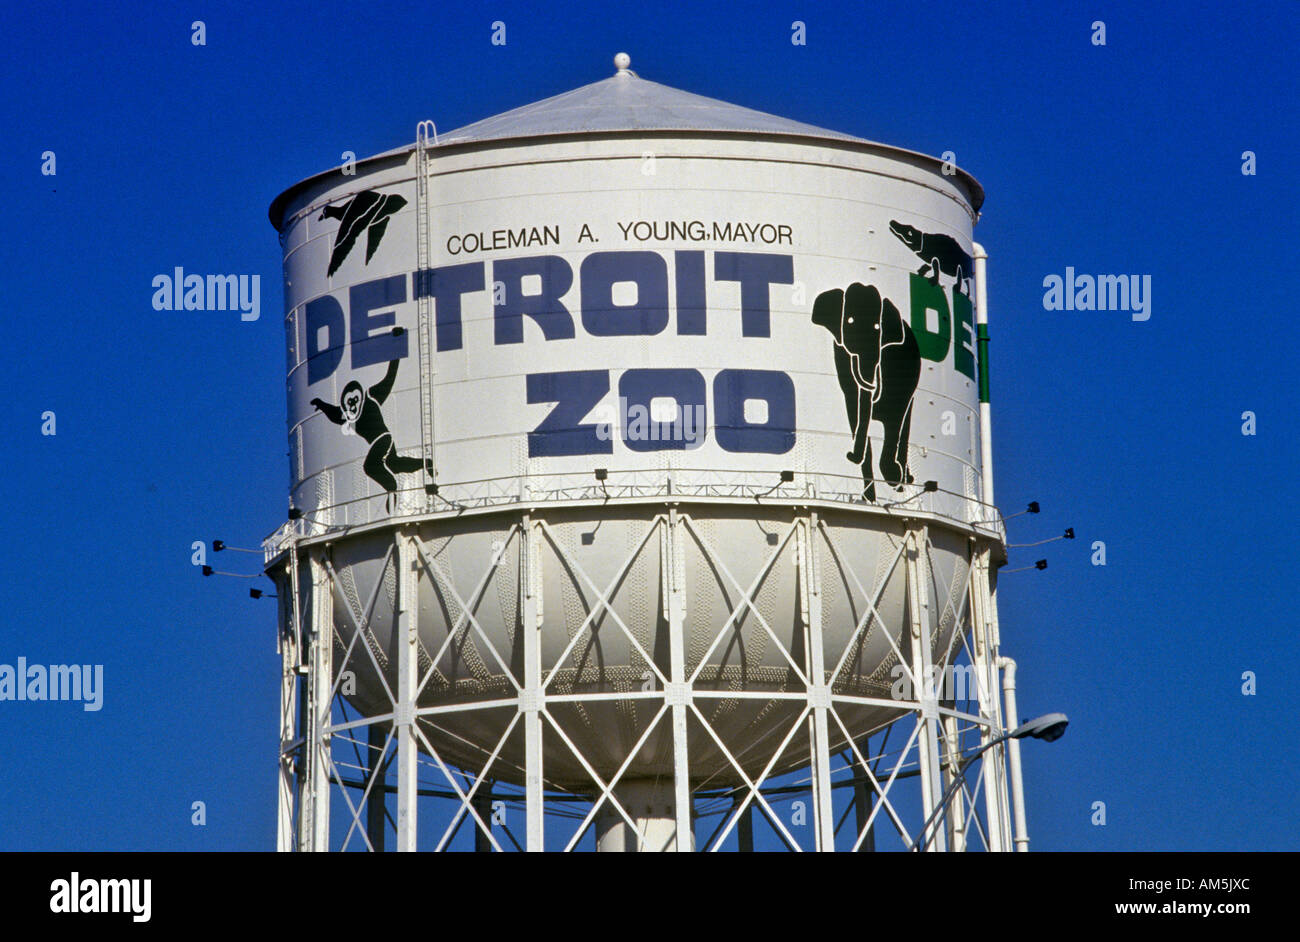 Water Tower At Detroit Zoo In Detroit Mi Stock Photo Alamy